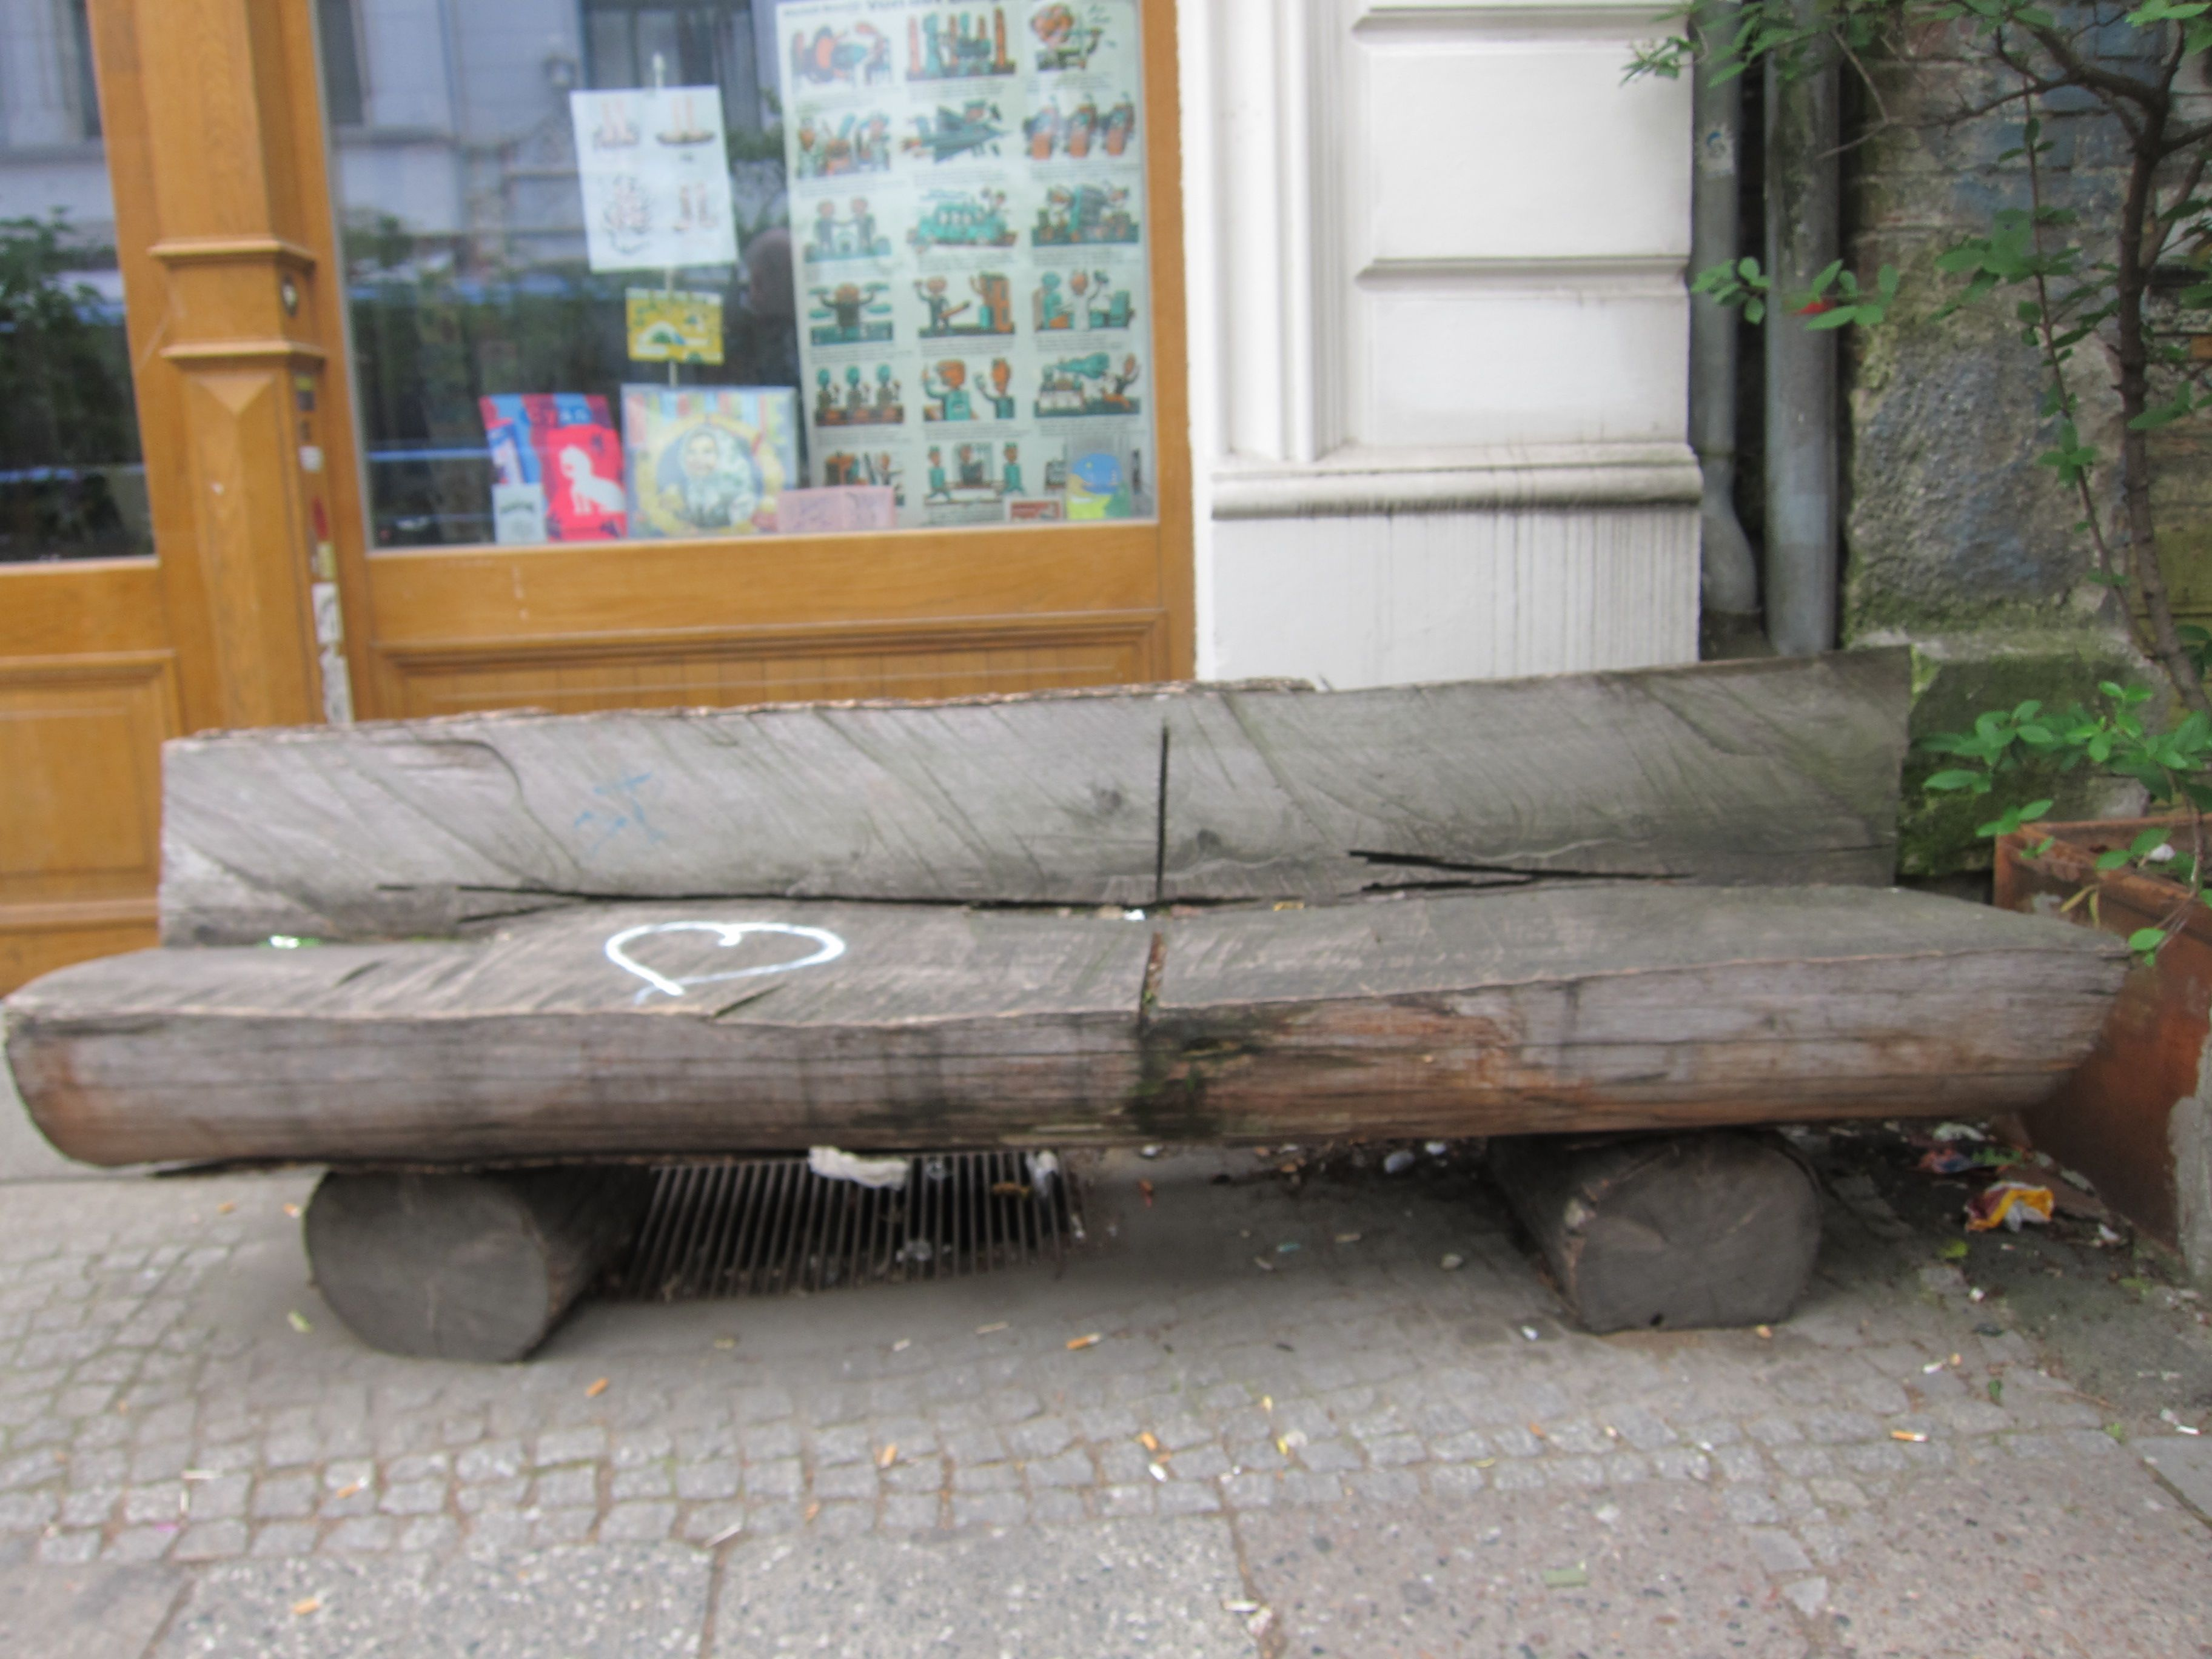 Tree trunk bench | Coffee table, Outdoor decor, Lawn and ...